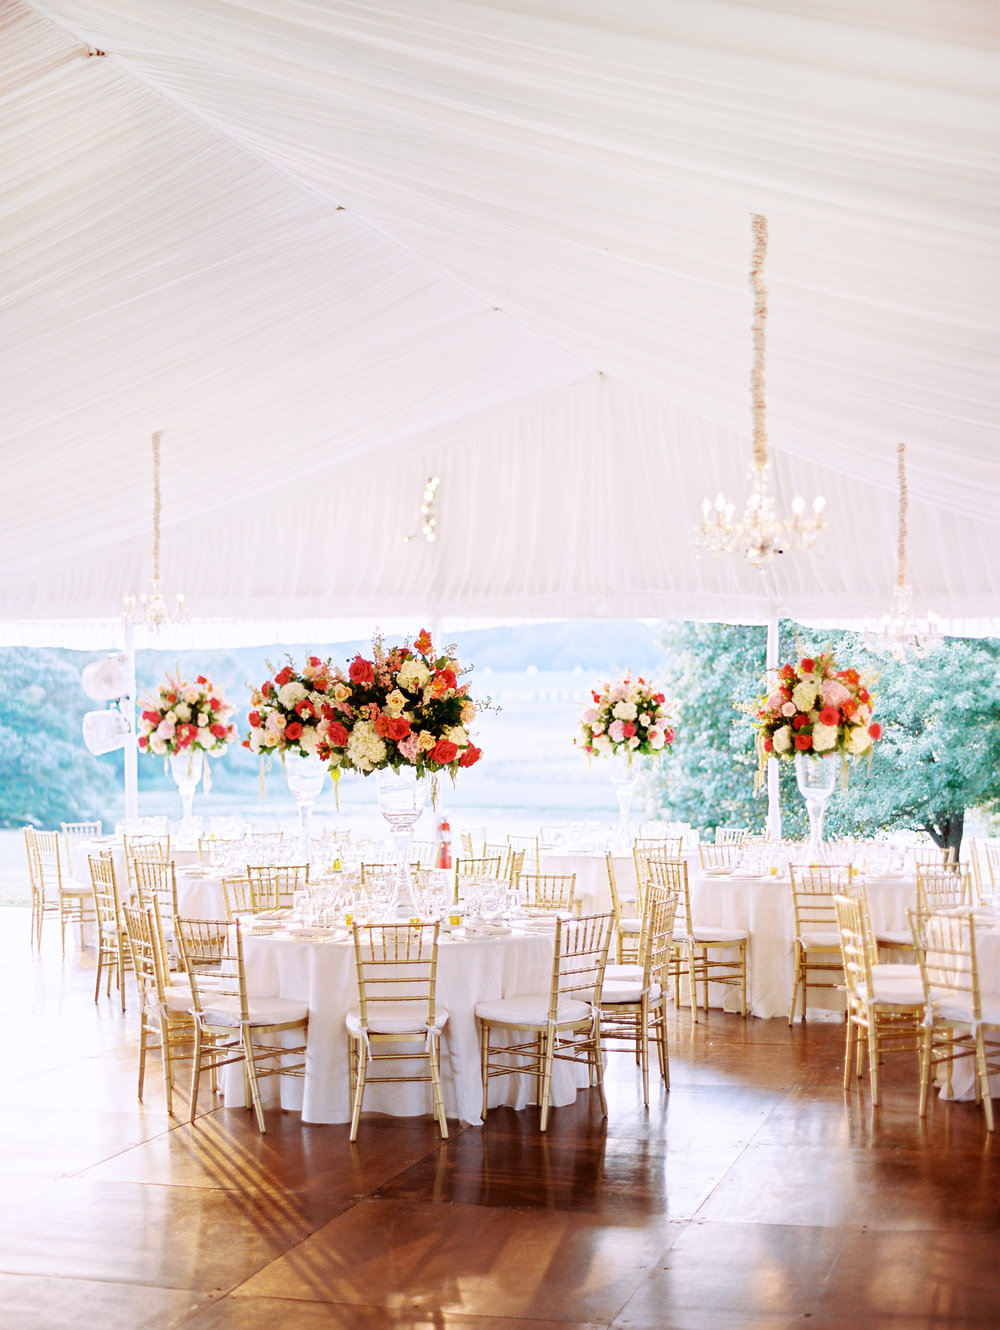 Photo by: Leo Patrone /  Florals: Beautiful Blooms /  Tent: EventQuip/  Lighting: Eventions Venue: Private Estate/ Rentals: Party Rentals LTD. / Styling & Planning: The Styled Bride